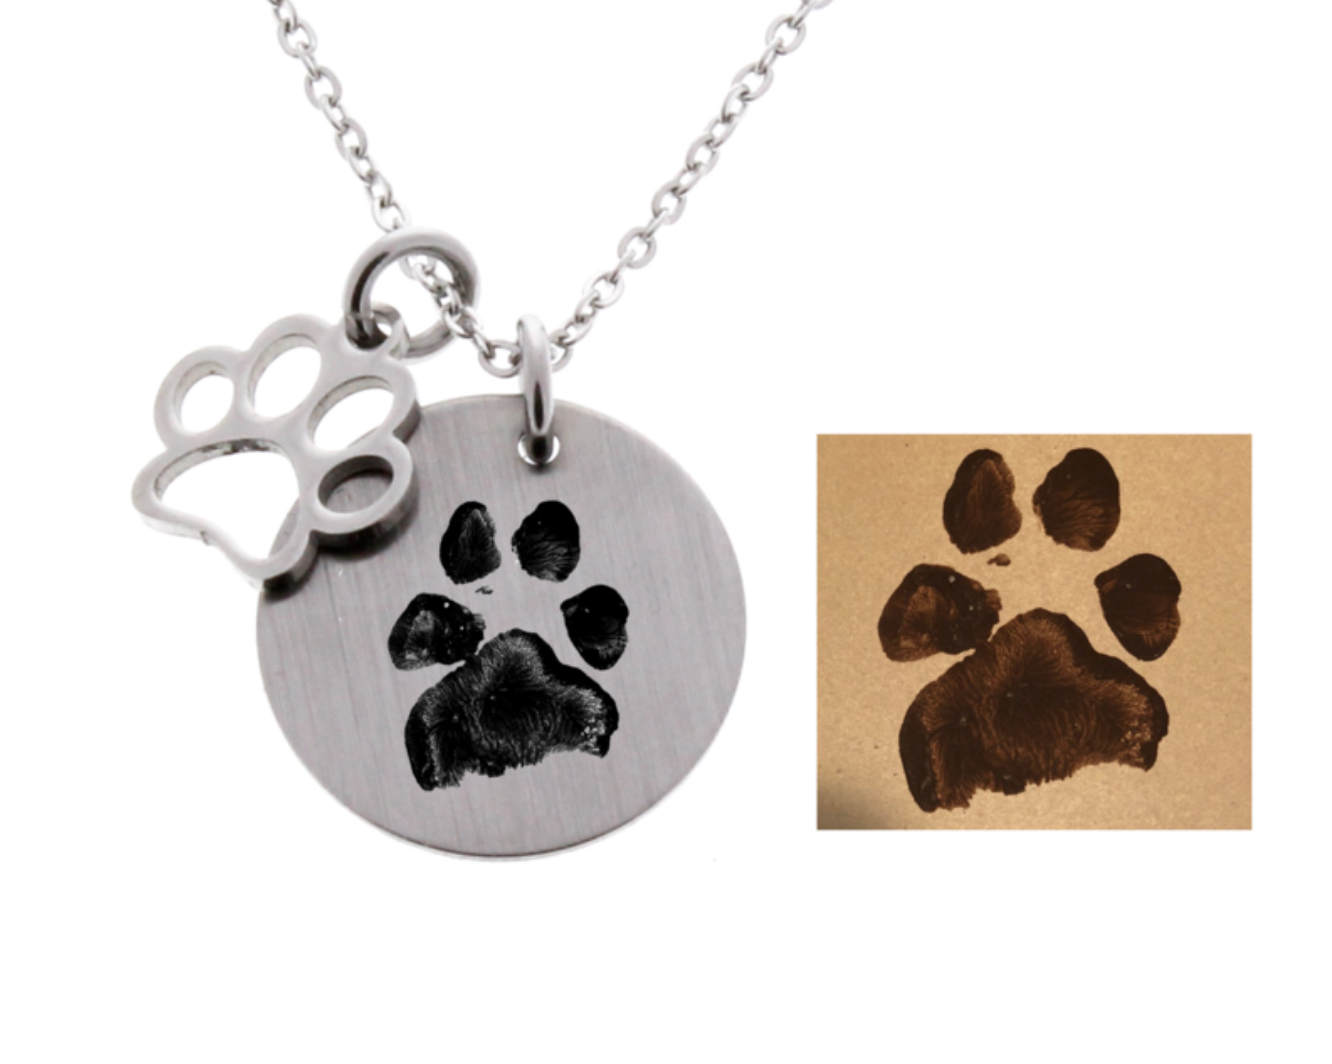 Paw Print Necklace - Real paw print!